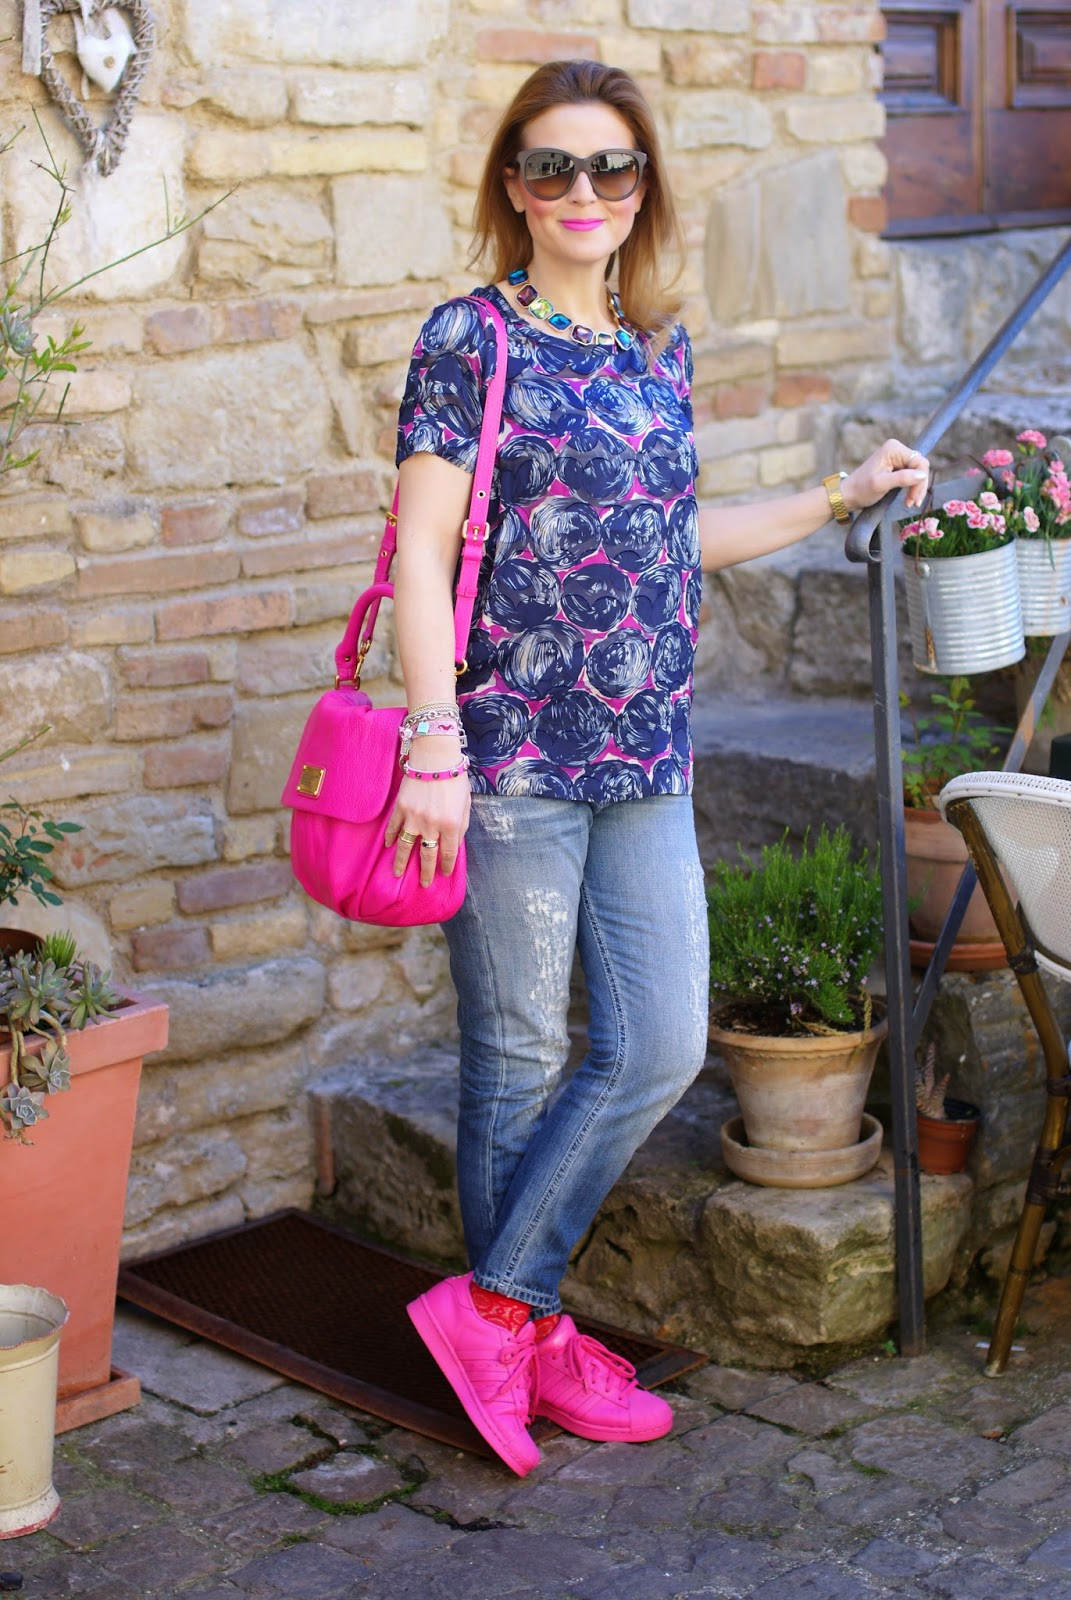 adidas supercolor pink, adidas supercolor rosa, semi solar pink, Fashion and Cookies fashion blog, fashion blogger with supercolor